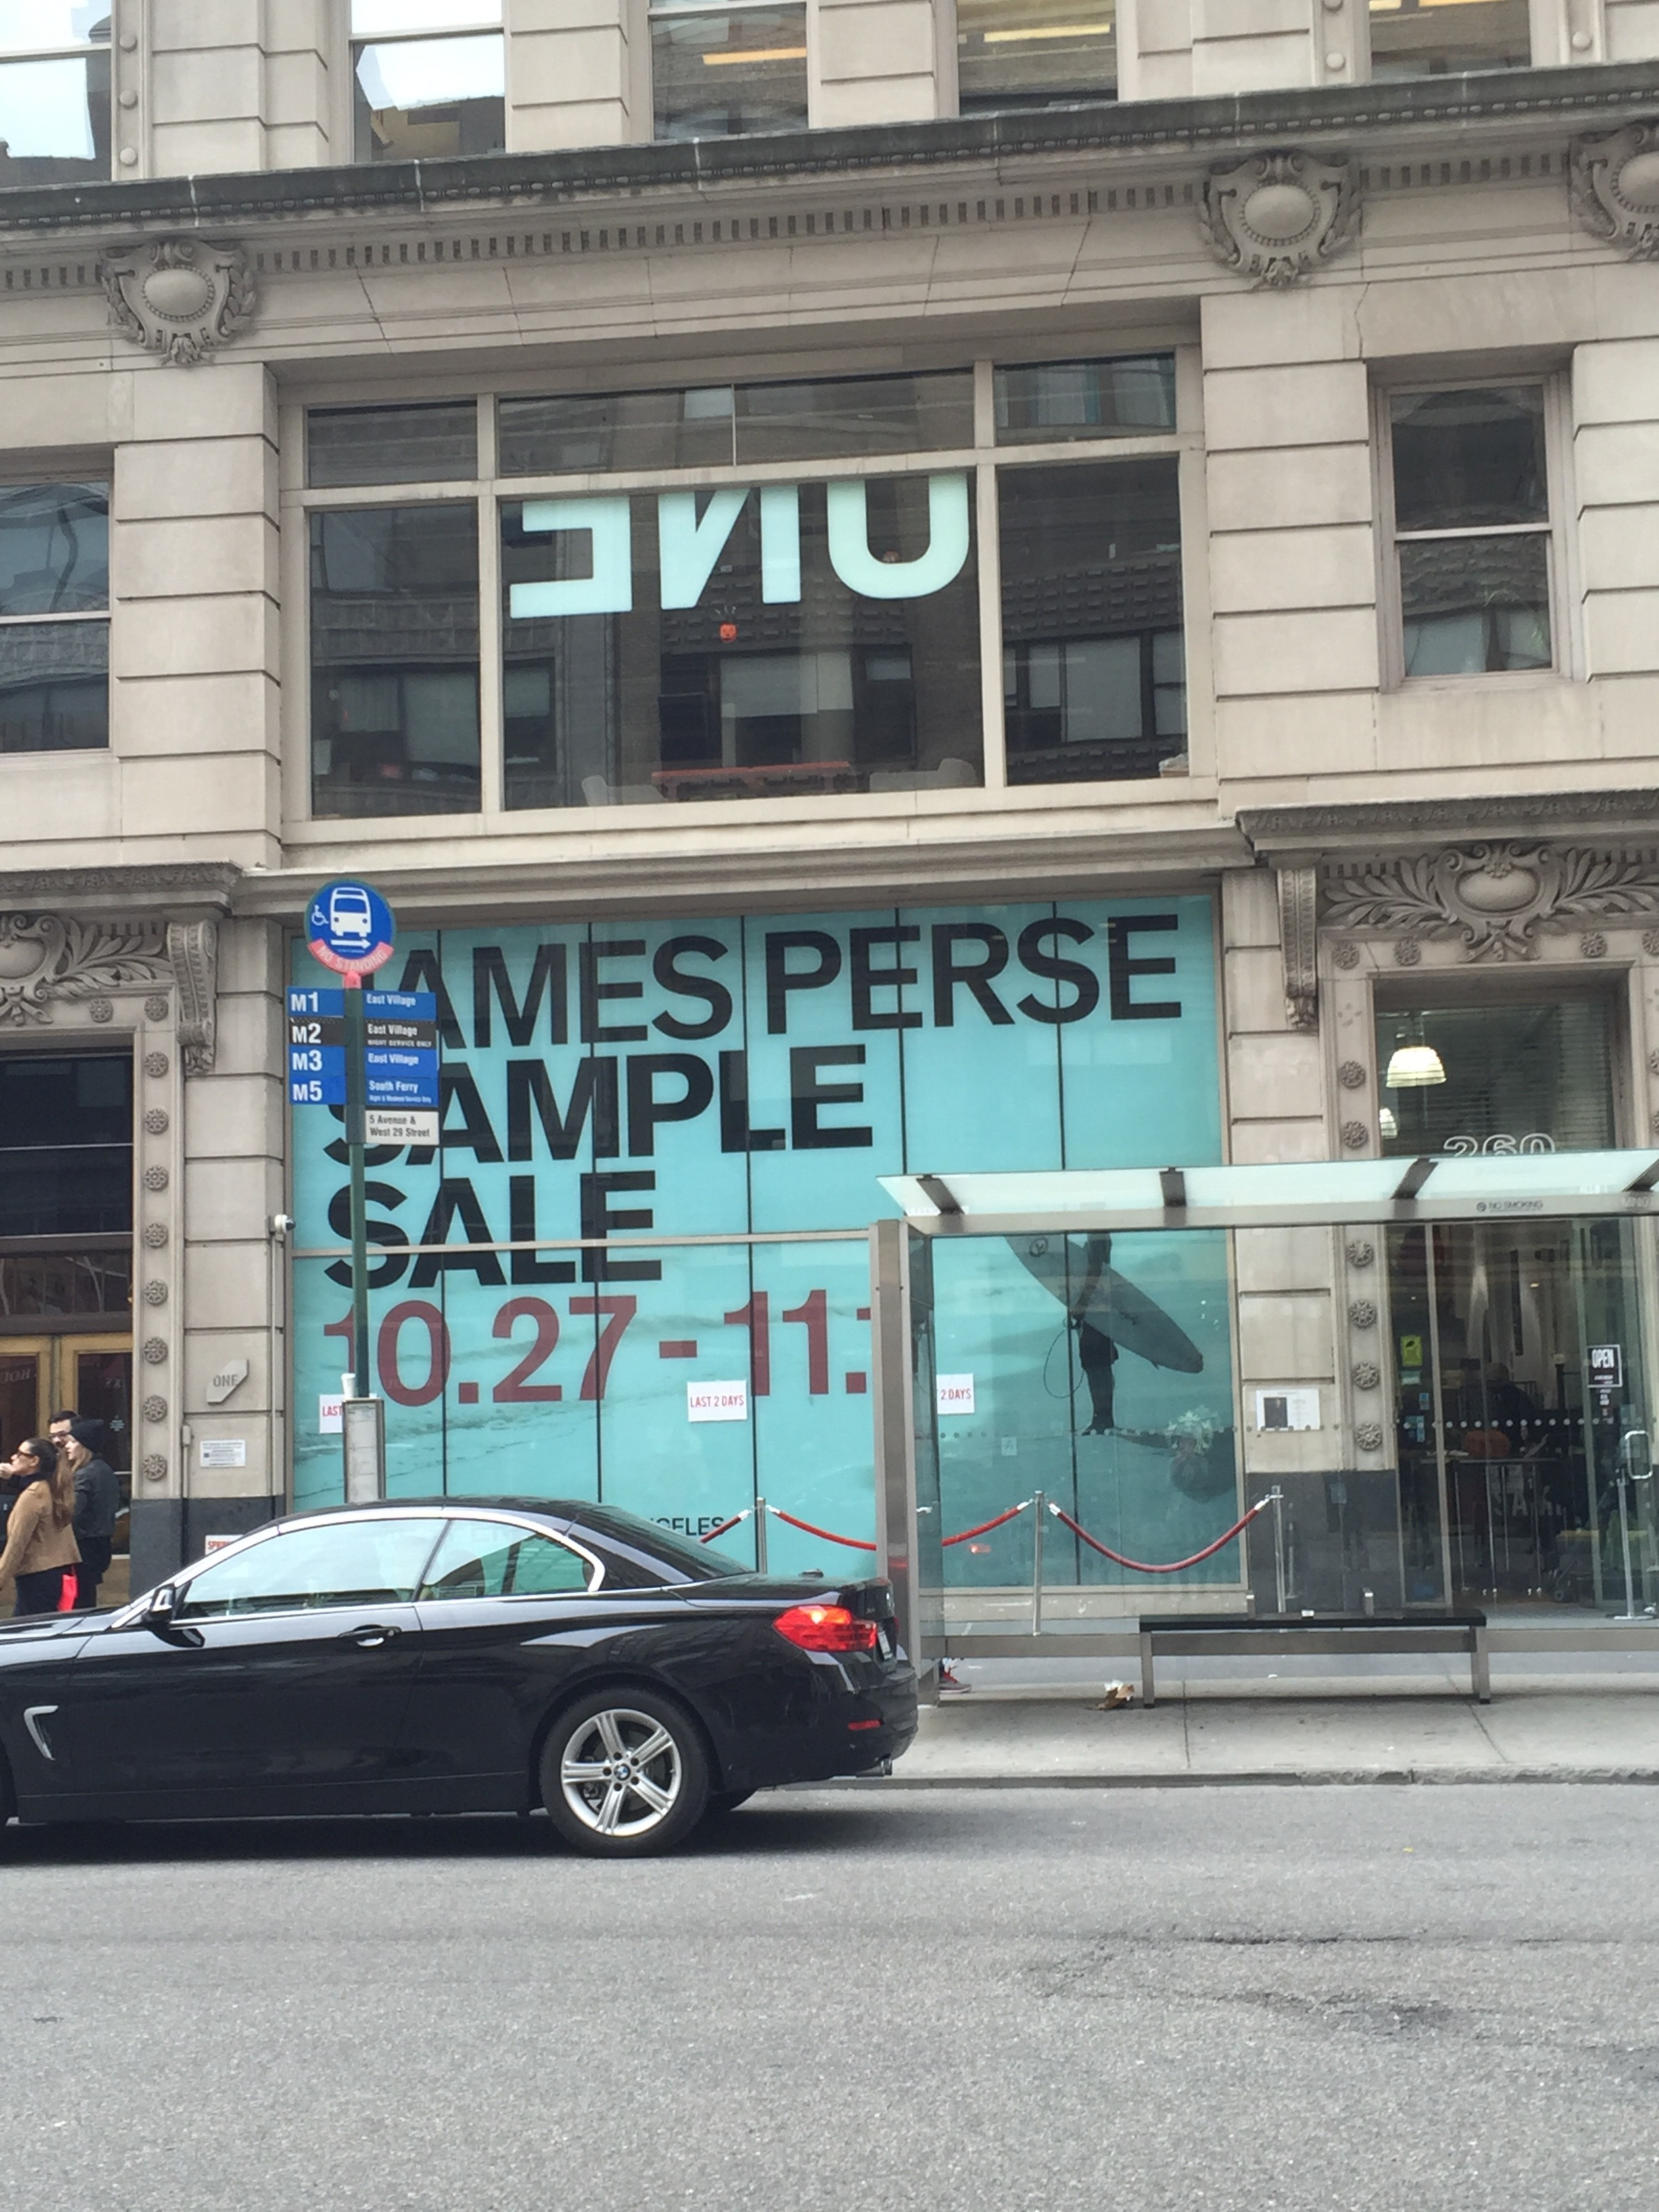 Sample Sale Archives - fashionhack.nyc